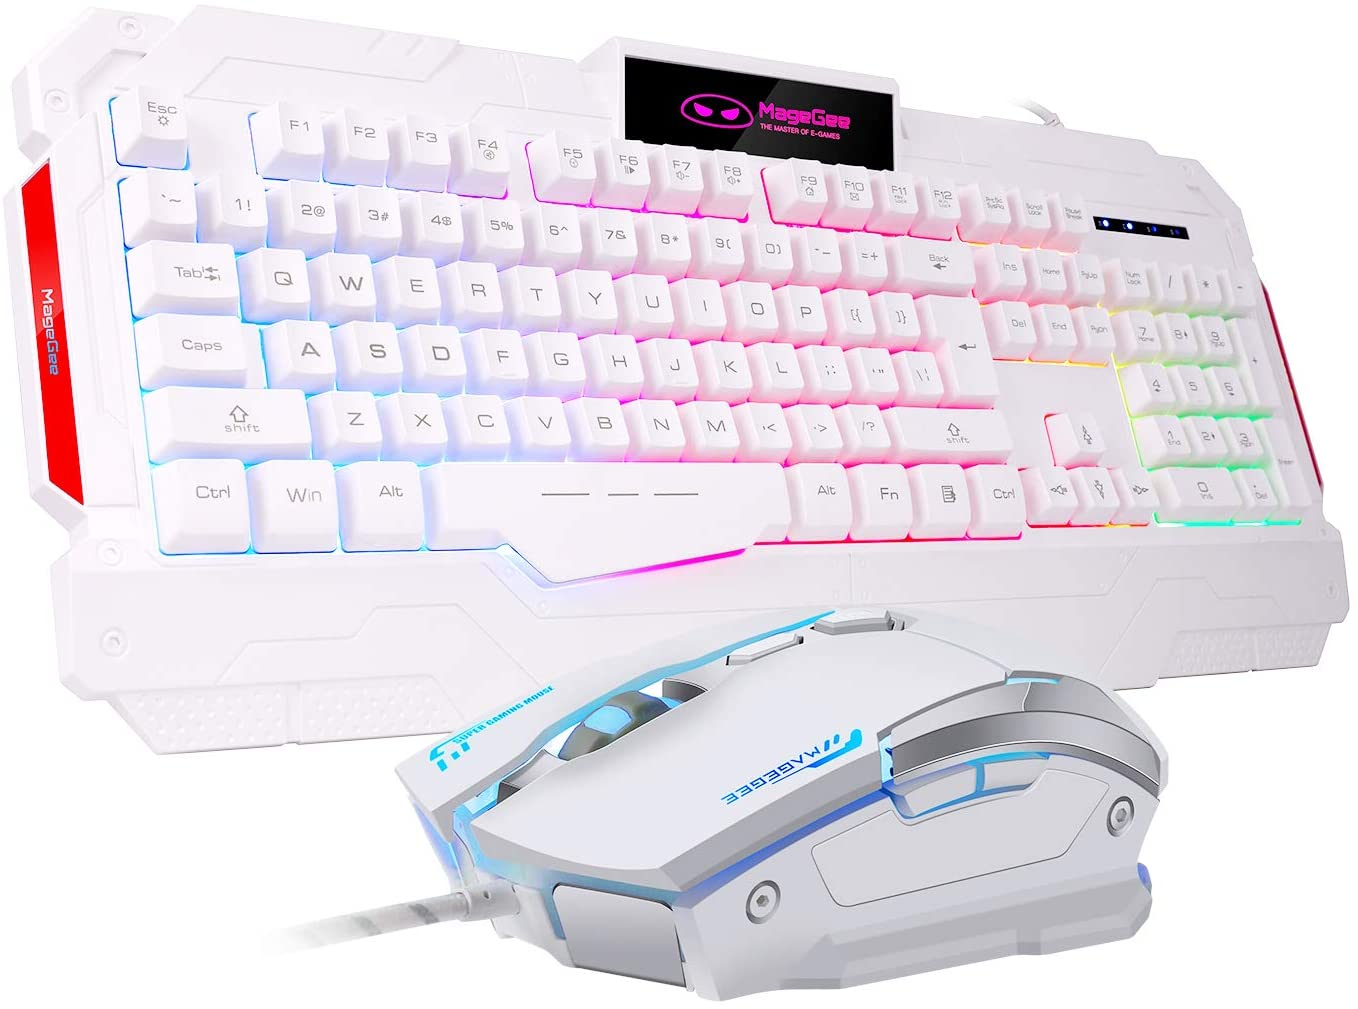 GK806 Wire USB Gaming Keyboard and Mouse Combo — Keyboard and Mouse Included, Breathing LED Backlit Keyboard and Mouse Set, Gaming Mouse and Keyboard Silent 104 Key with Wrist Rest for Windows PC Game